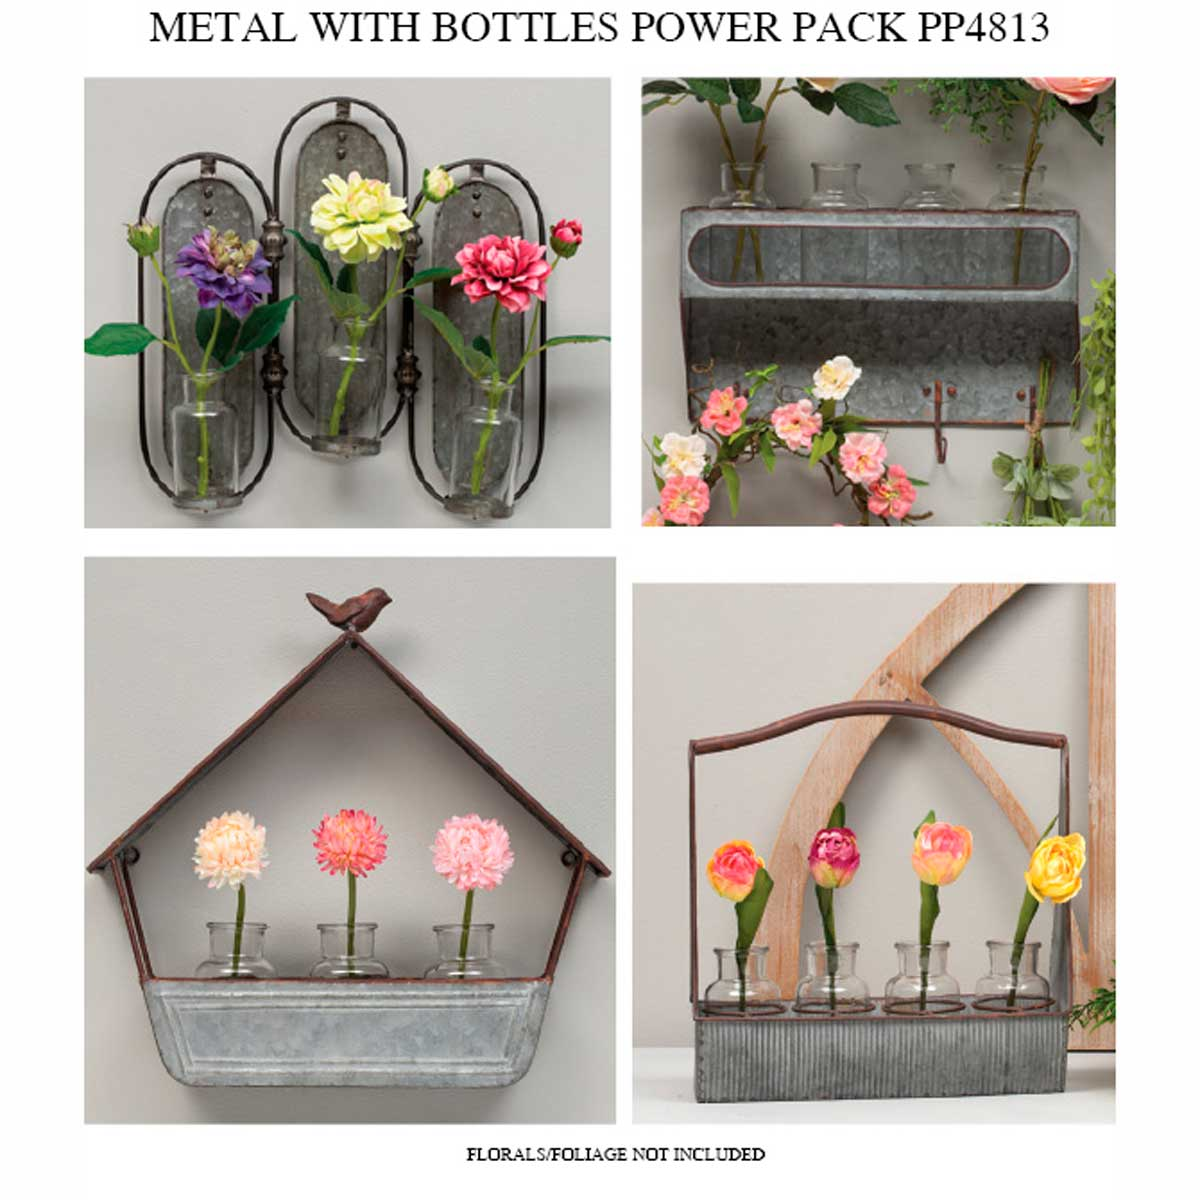 METAL WITH GLASS BOTTLES POWER PACK 4 UNITS